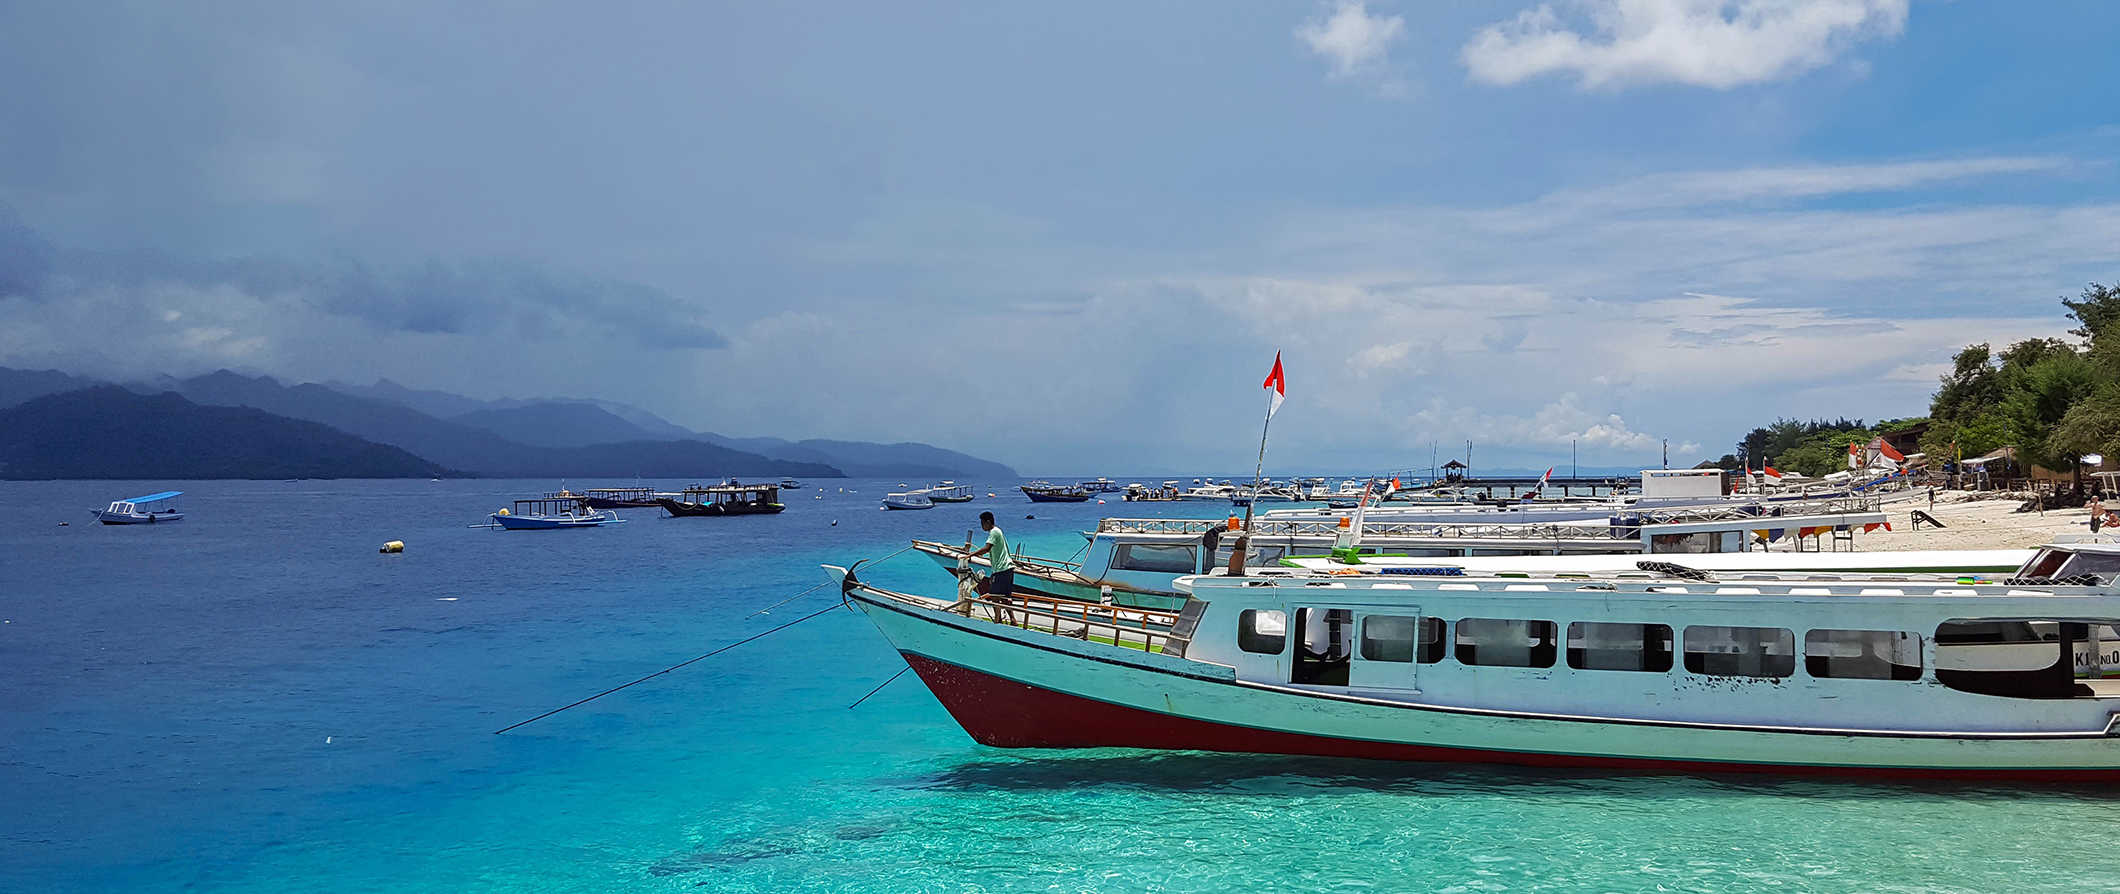 a beach with a boat in the Gili Islands